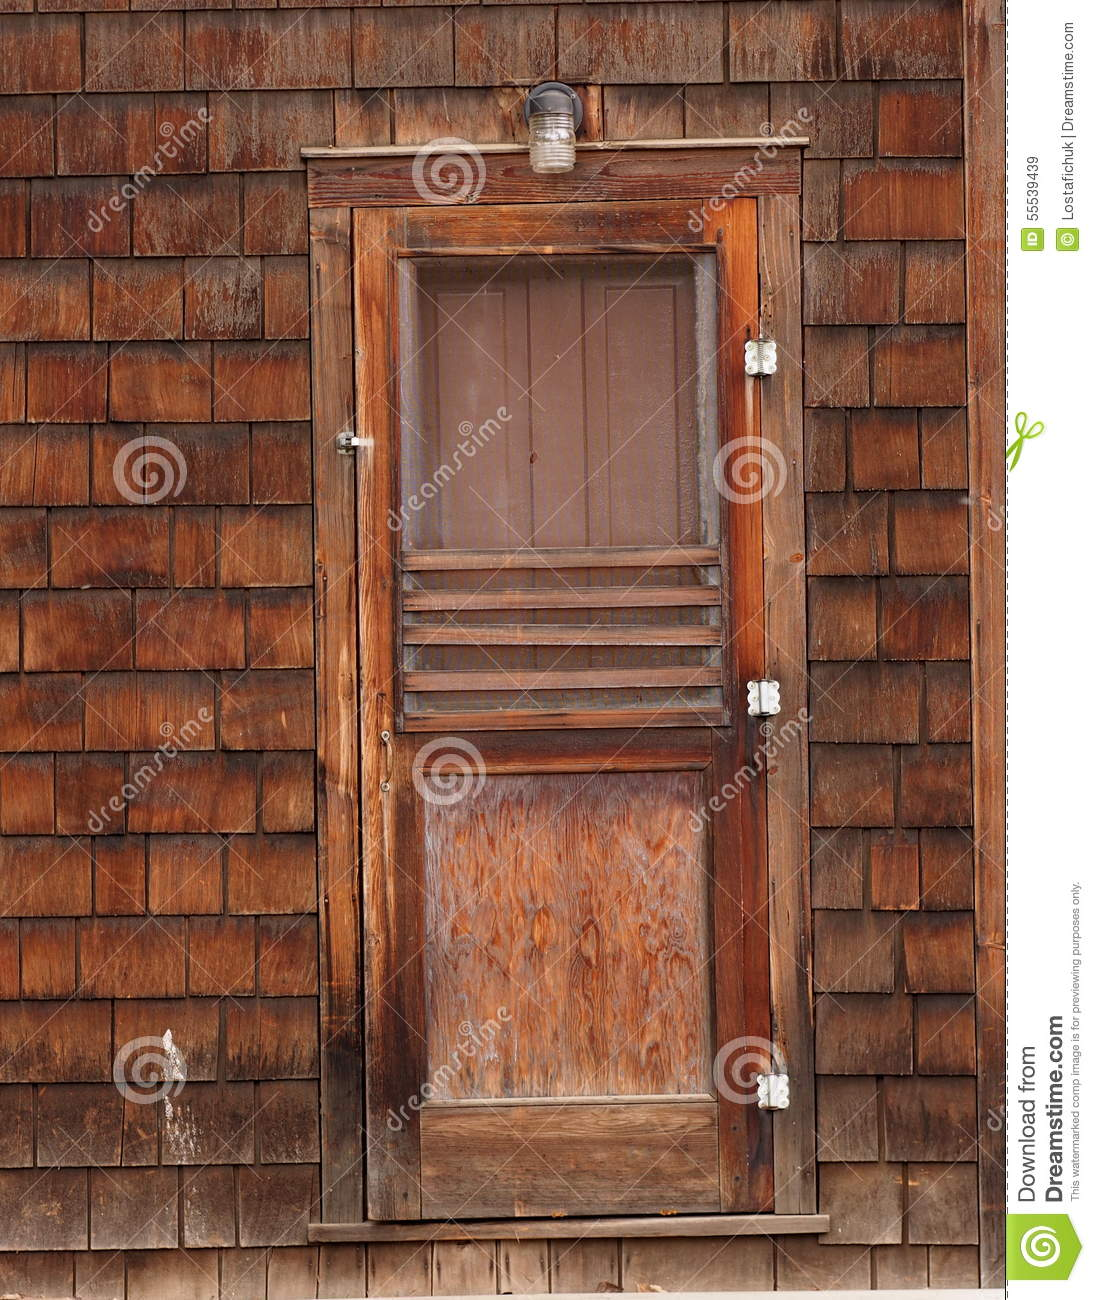 Old Fashioned Wooden Screen Door Stock Photo Image 55539439 Door Fashioned  Old Screen Wooden Vtopaller Images